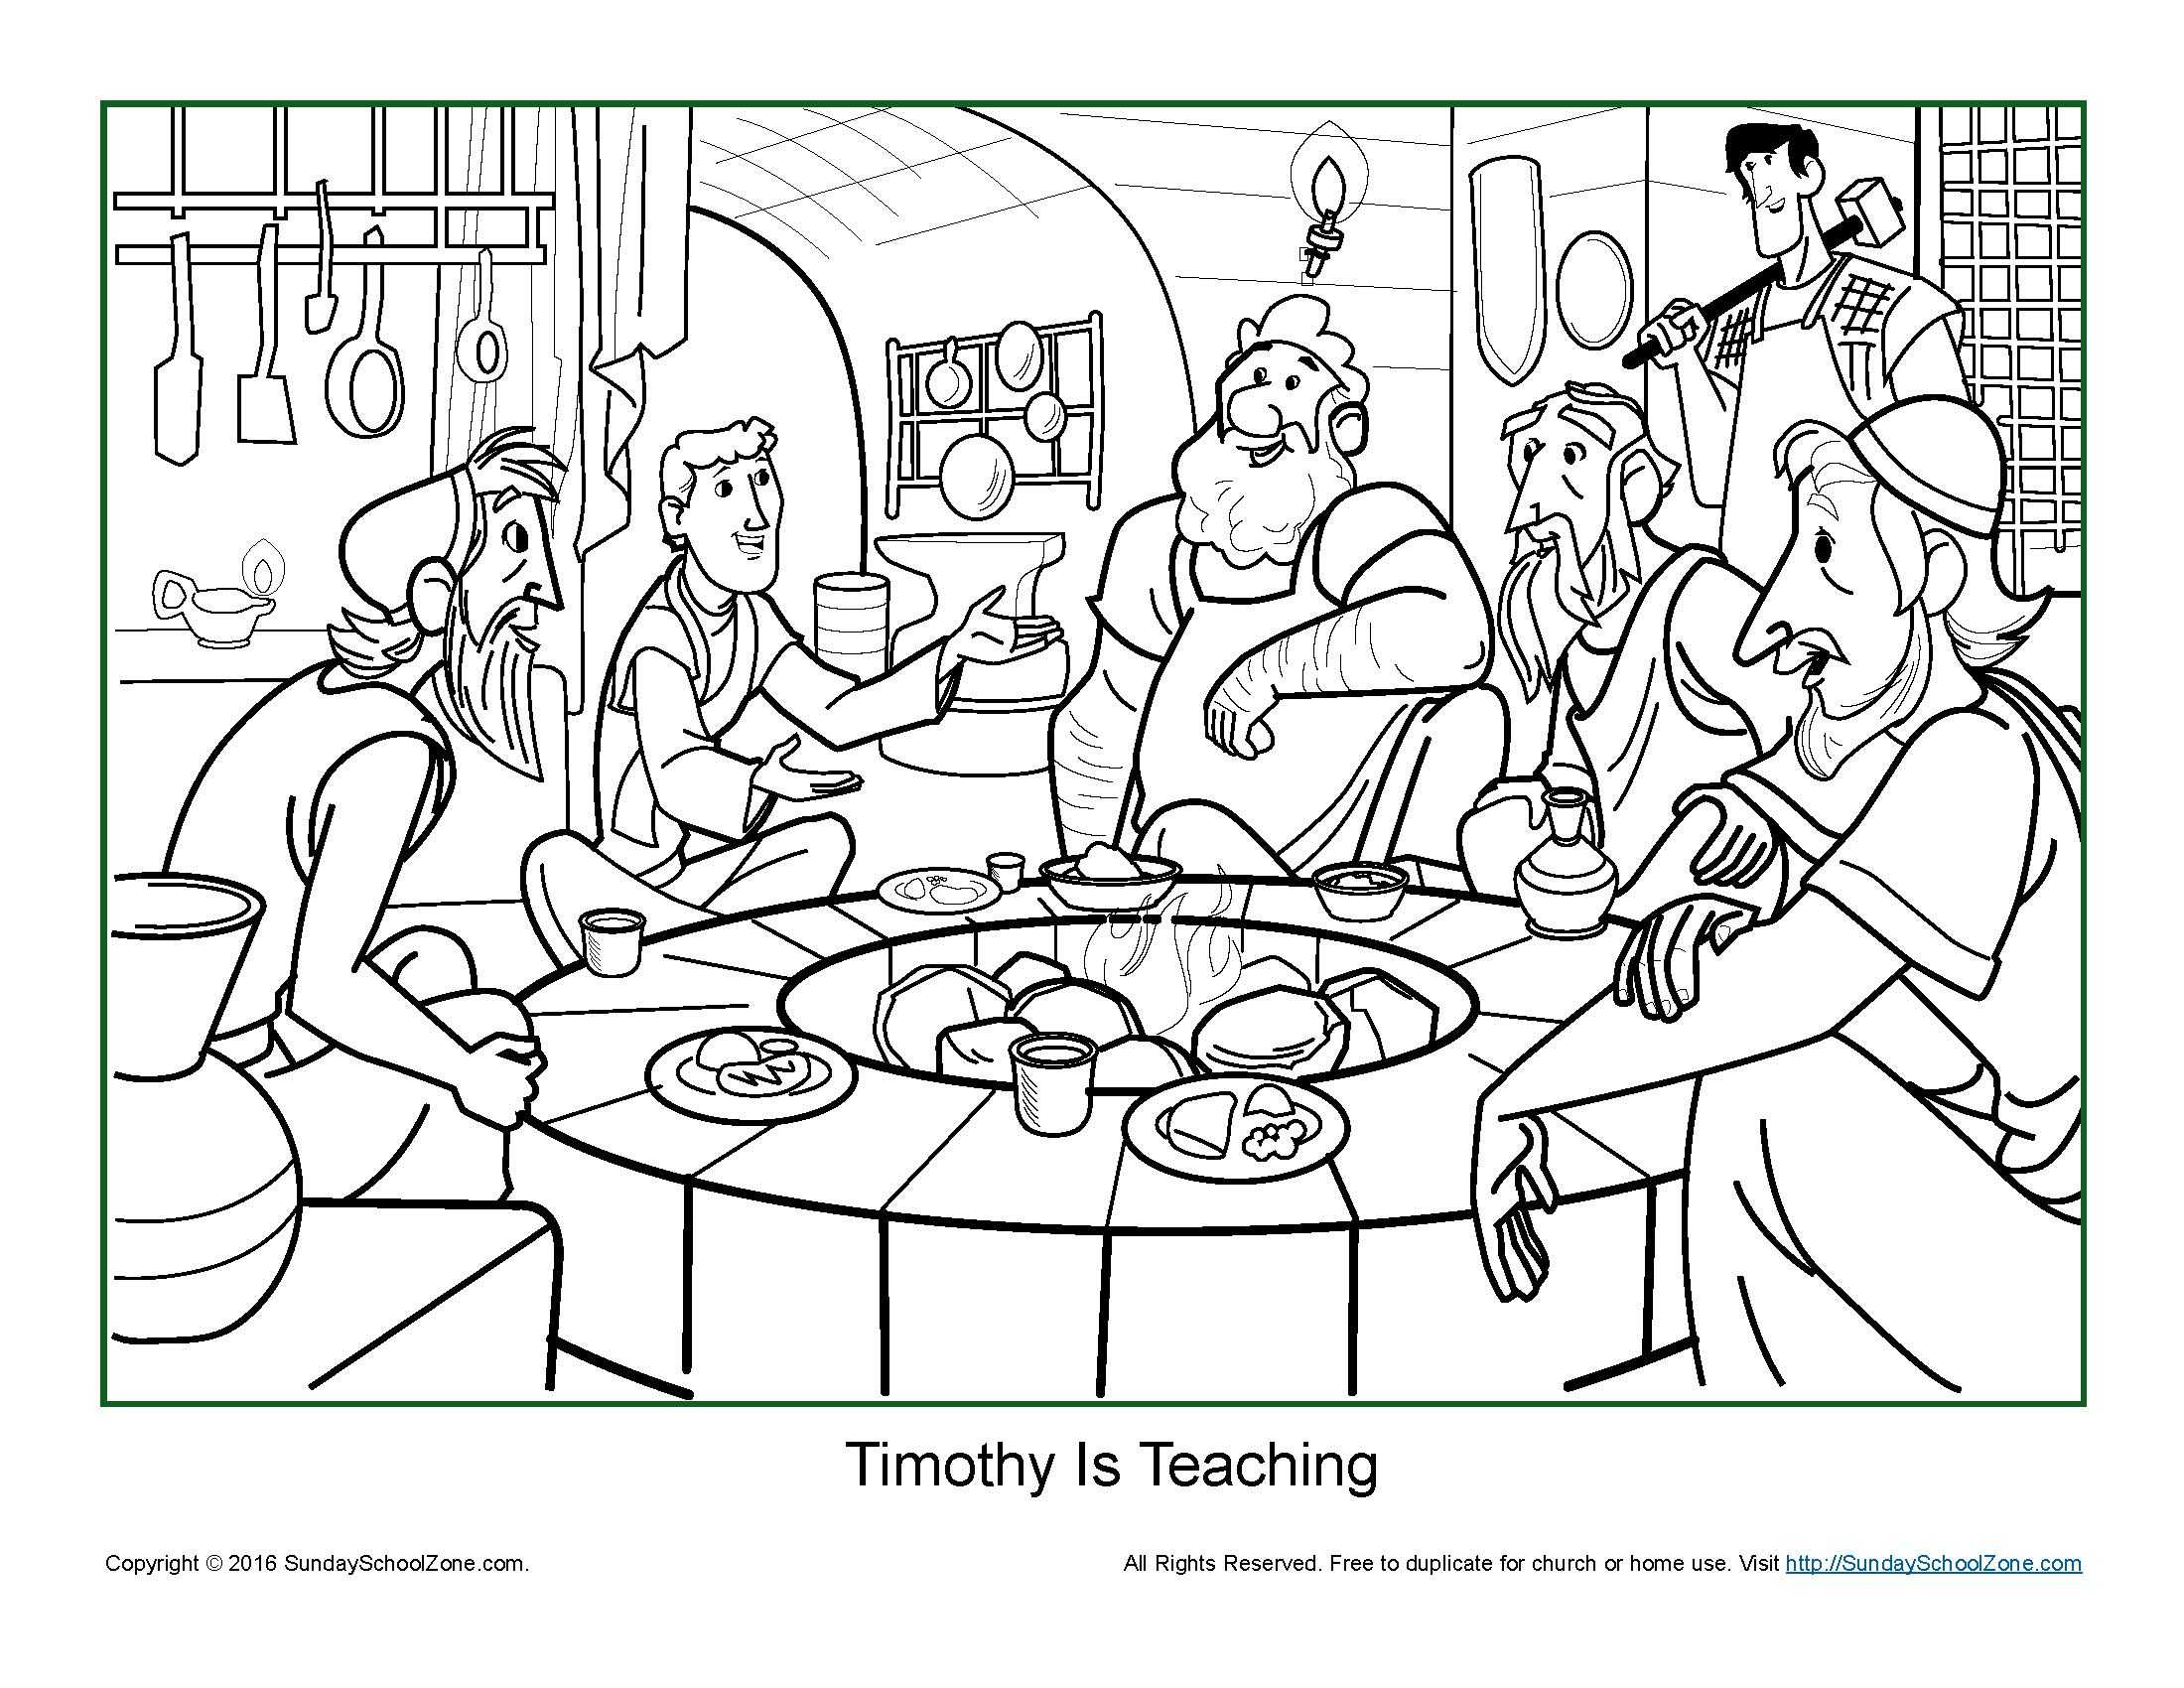 Childrens coloring sheet of saul and ananias - This Free Printable Timothy Is Teaching Coloring Page Will Help Kids Remember That God Can Use A Person No Matter What Their Age May Be